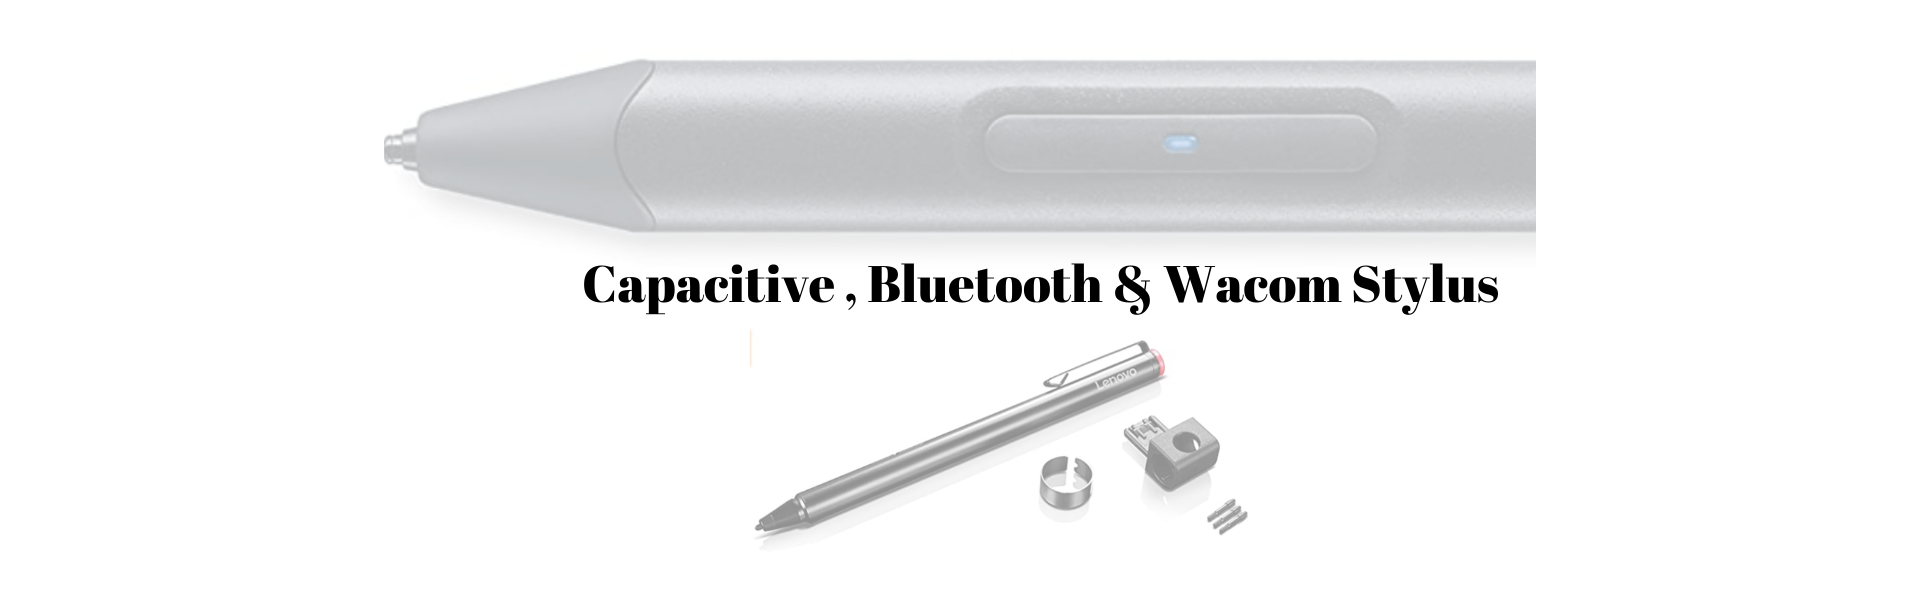 Genuine 70 Interactive Touch Monitor C7017T Passive Stylus Pen PW5HP 0PW5HP by EbidDealz